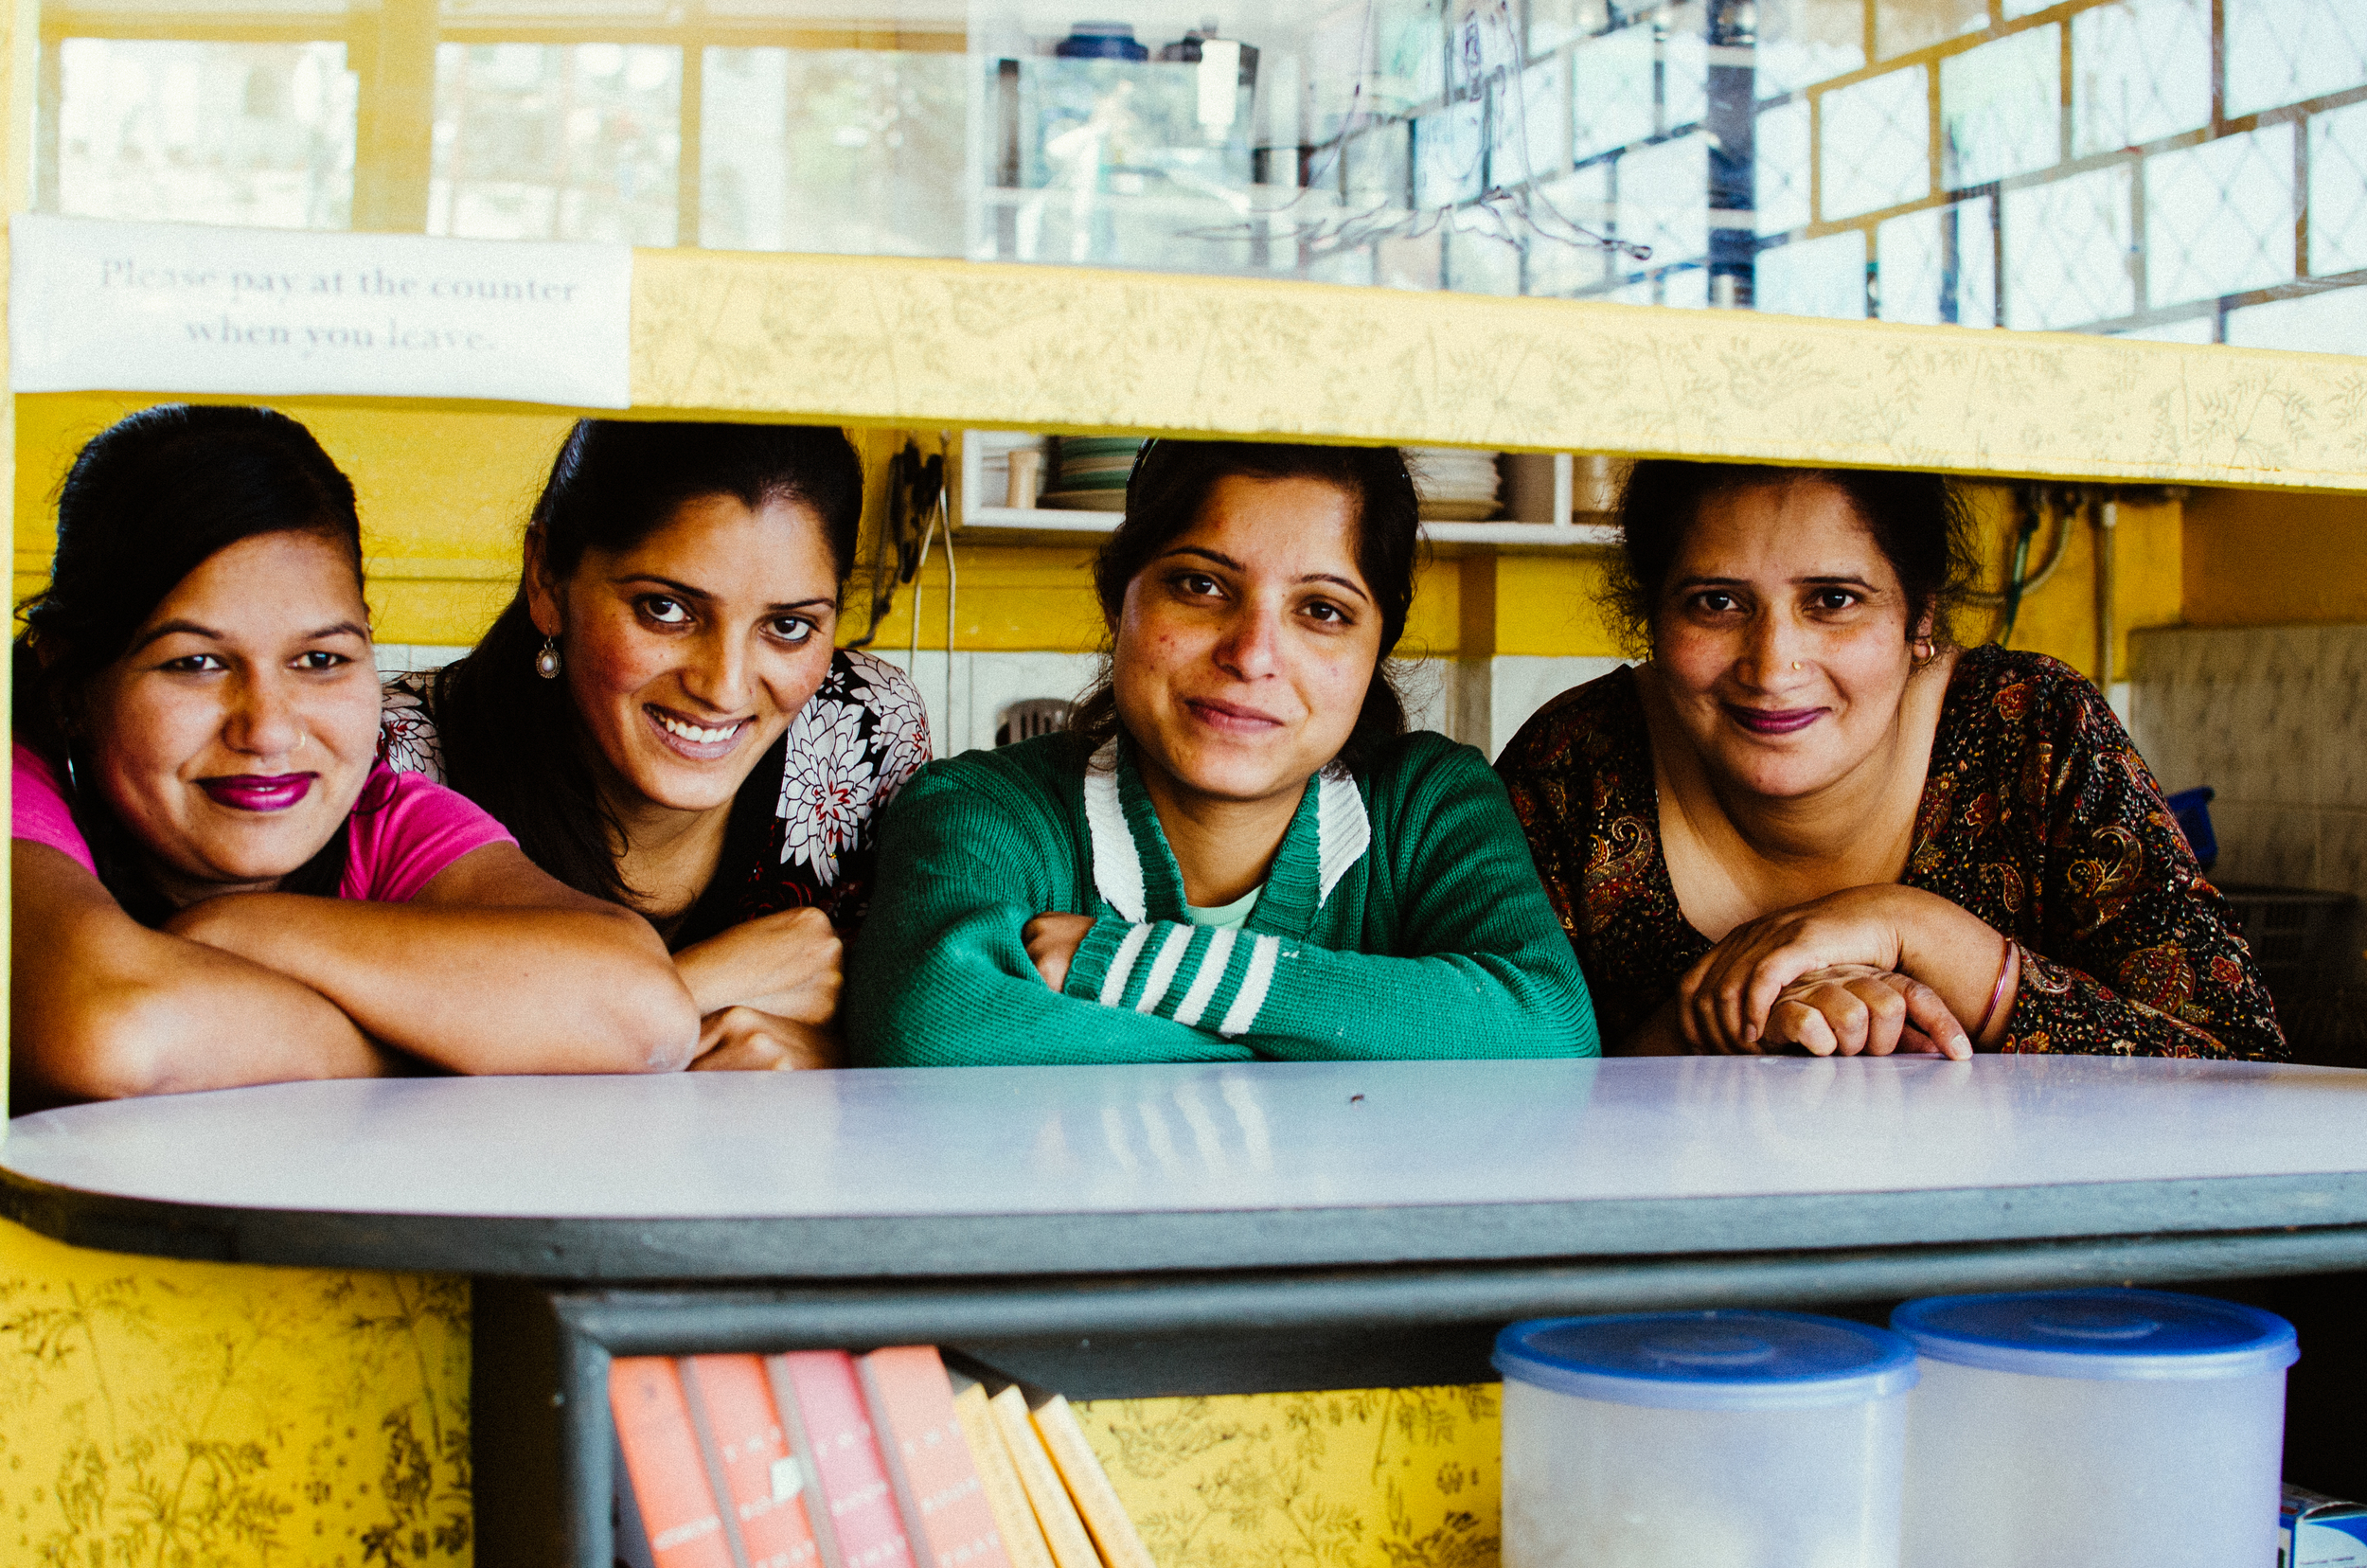 The women of Chhaya Cafe -  Sunita, Pooja, Kumlesh and Bina.  (Edited with VSCO film 04)